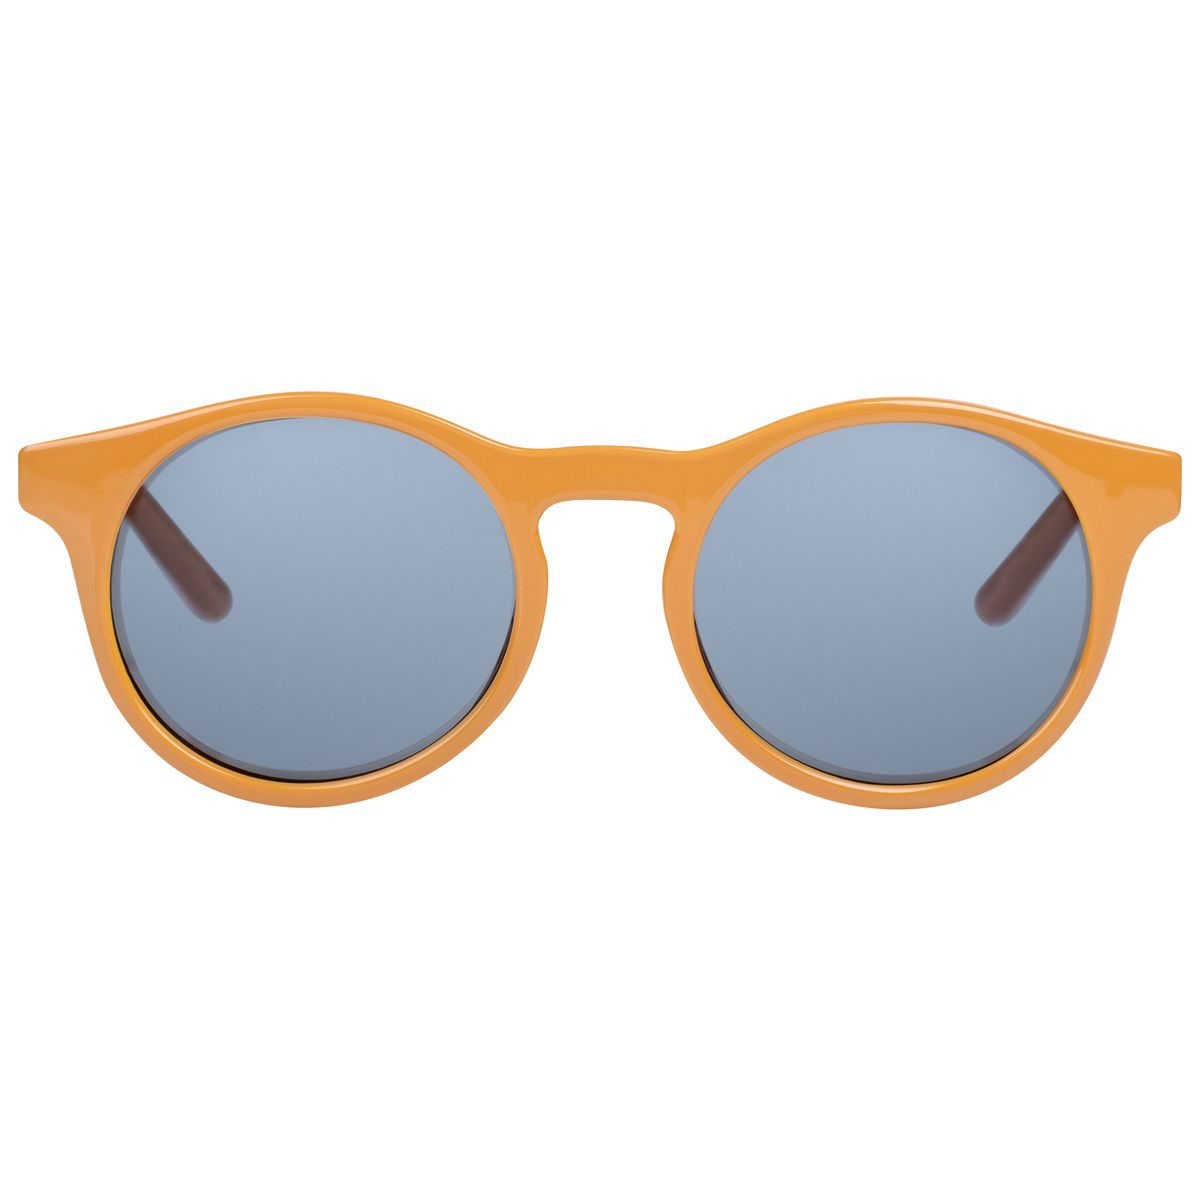 Goose & Dust sustainable sunglasses - sol gloss